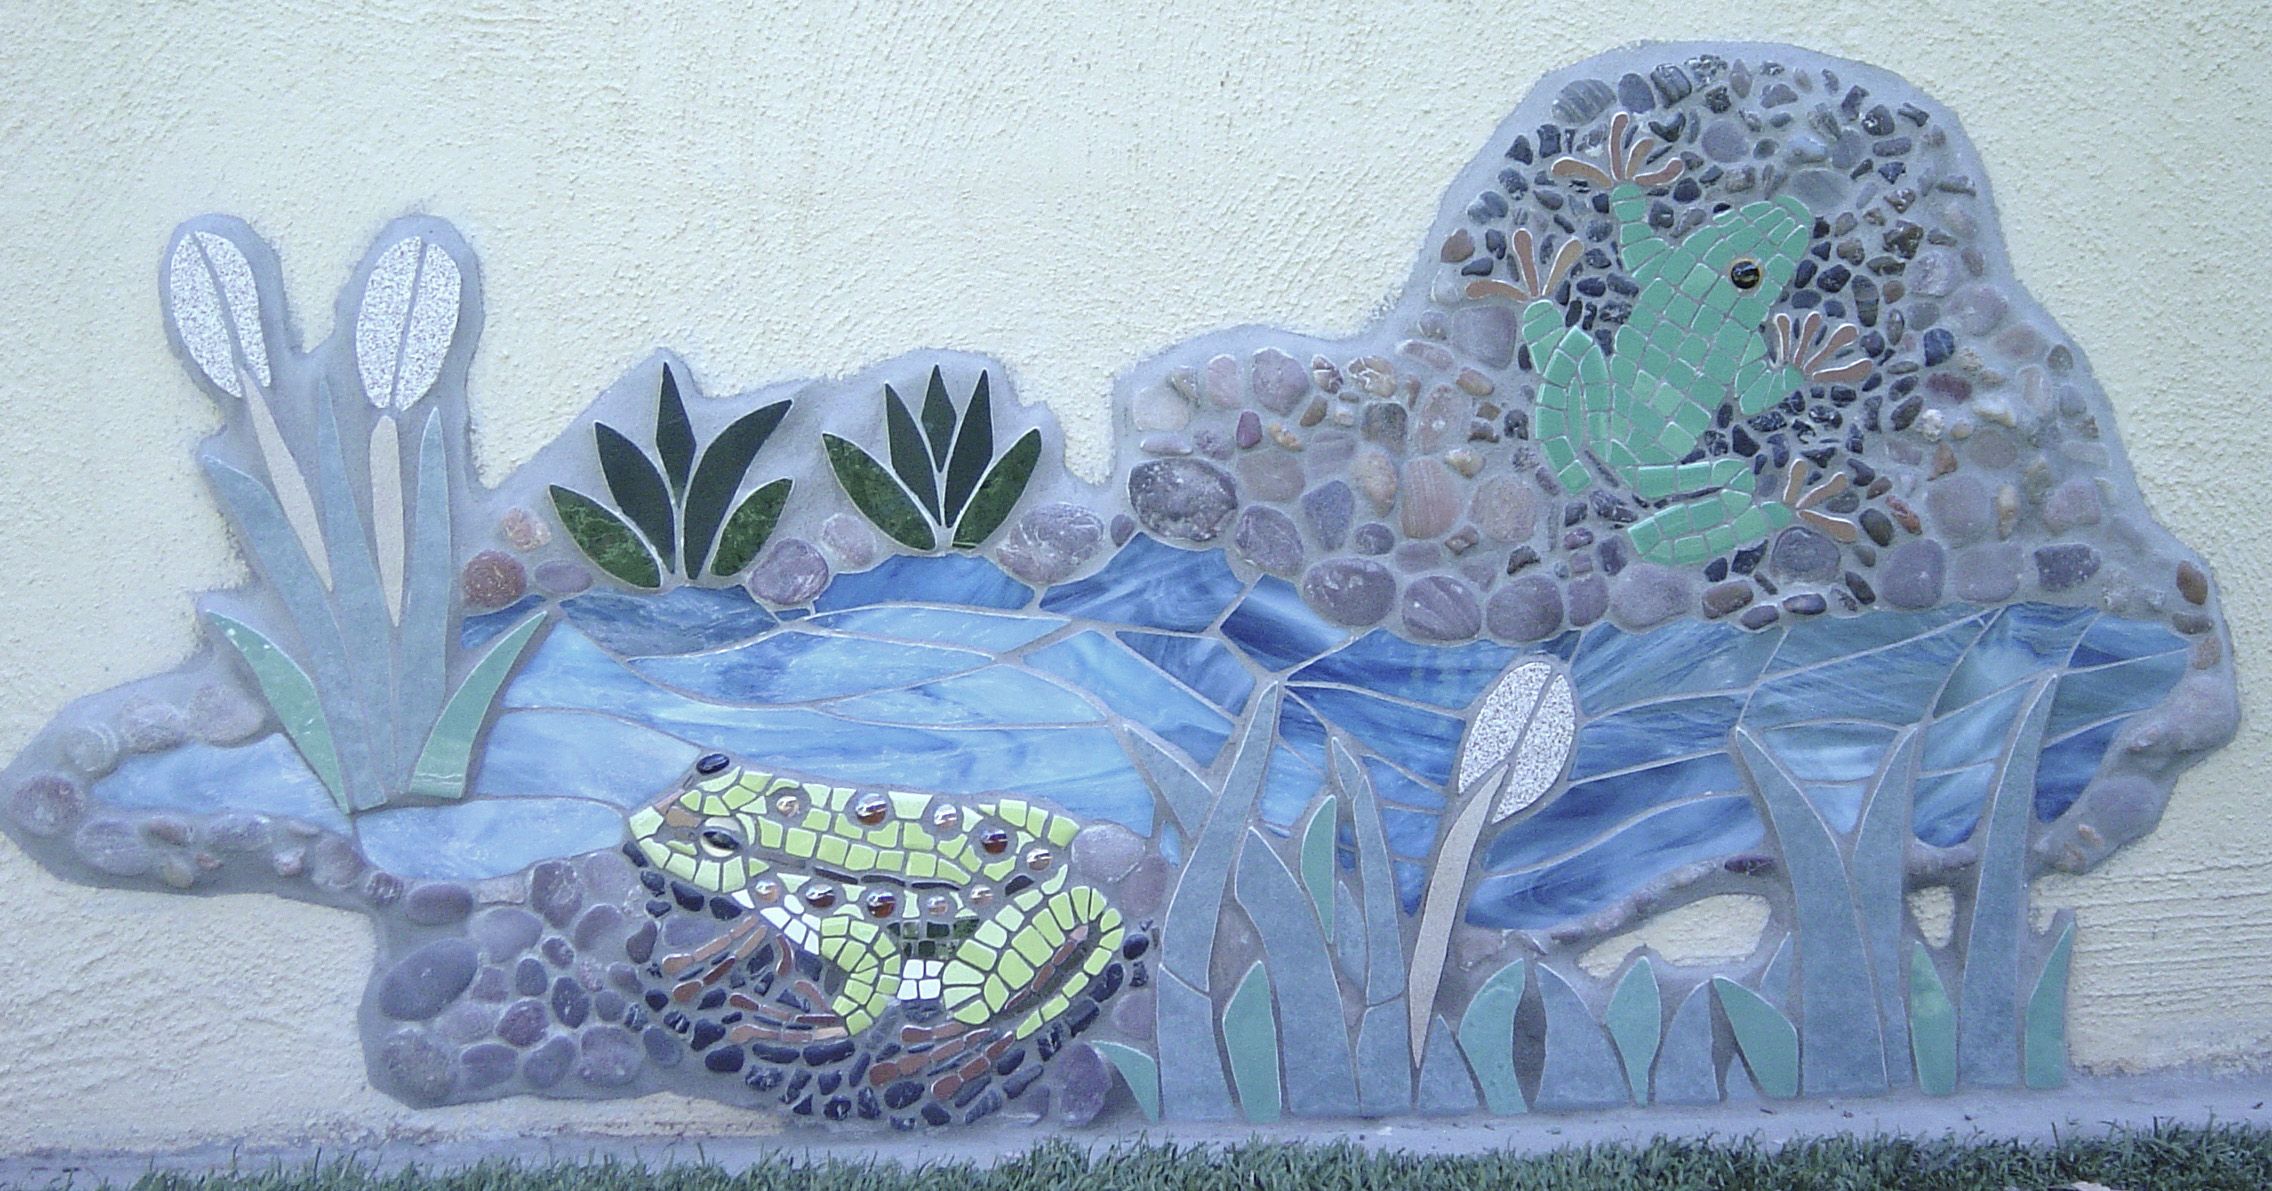 Image of a glass, peeble and ceramic mosaic featuring two frogs, a pond and water grasses